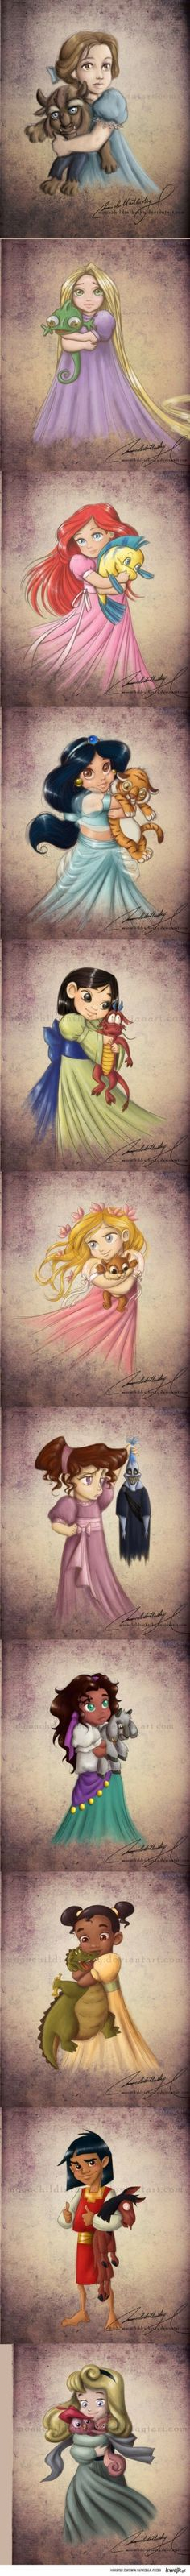 I would love to print these pics and put them in frames in my girls room. Disney princess young